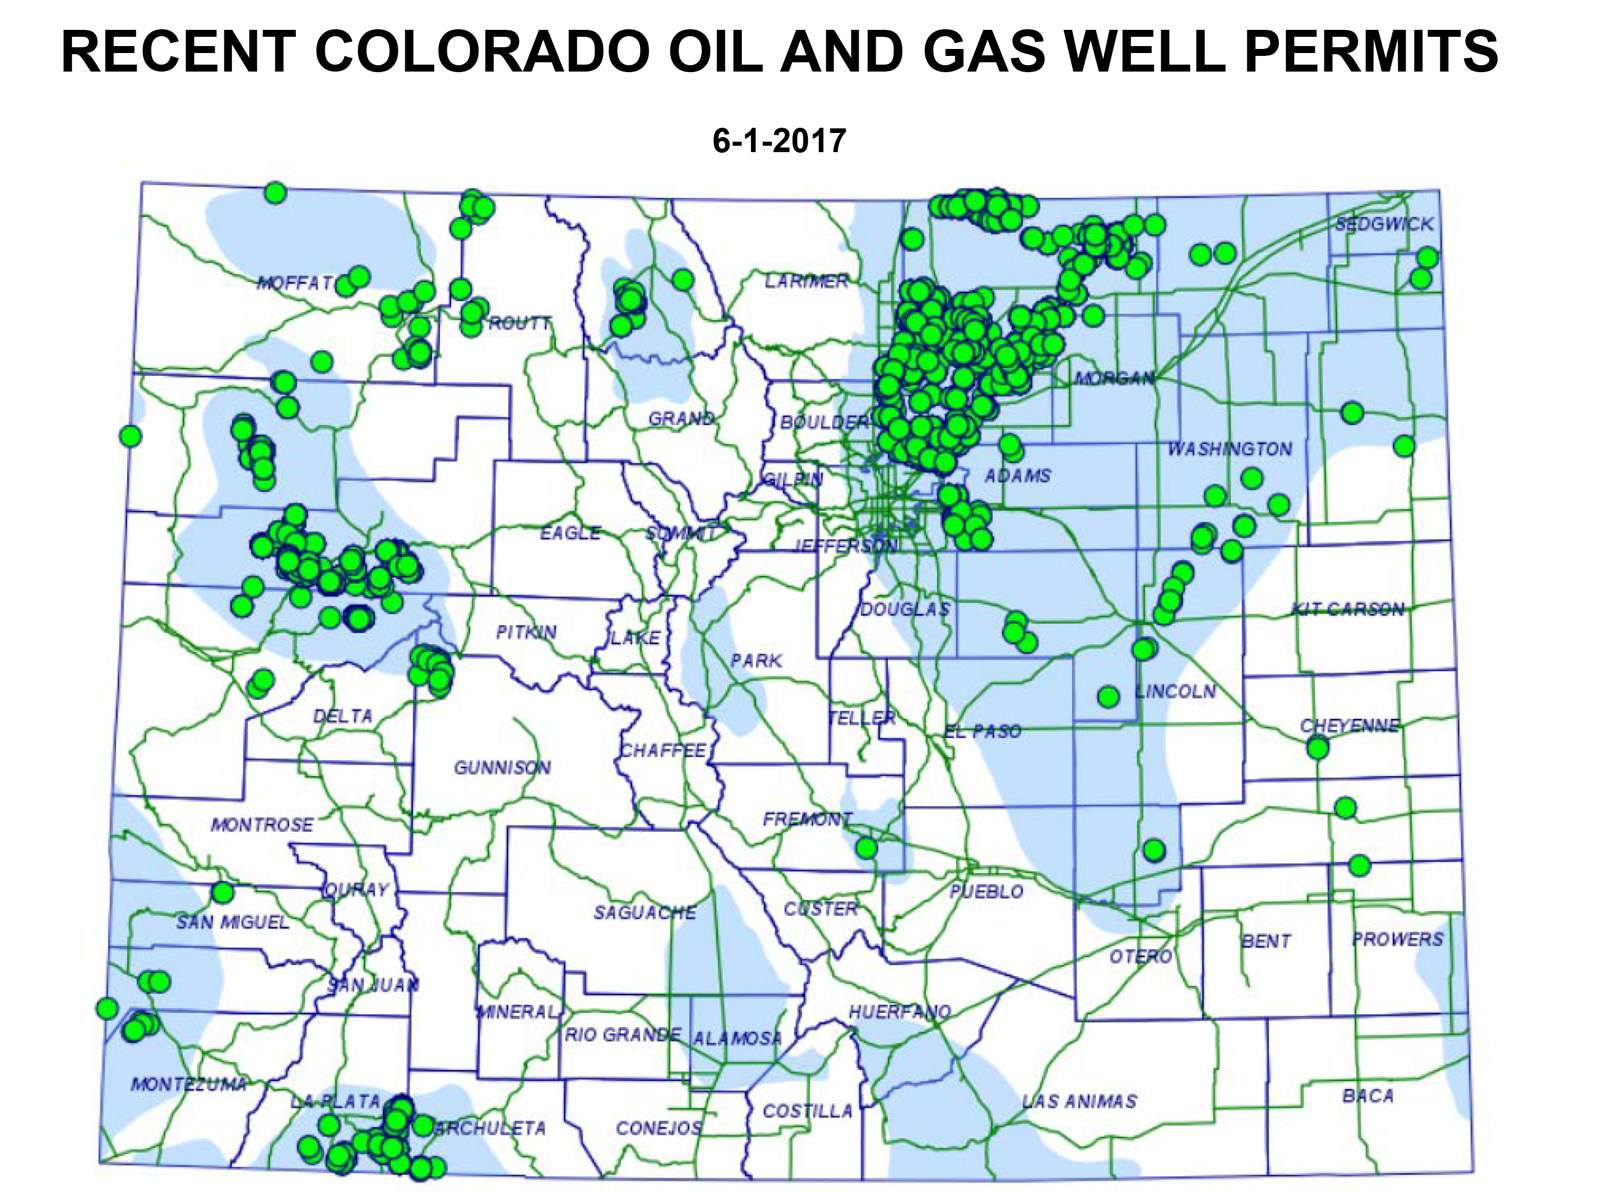 After Firestone Explosion Residents Worry About Home Values Kunc Explosive Welding Diagram Map Showing Recent Oil And Gas Well Permits 1565 Have Been Approved So Far This Year 1043 In Weld County Alone